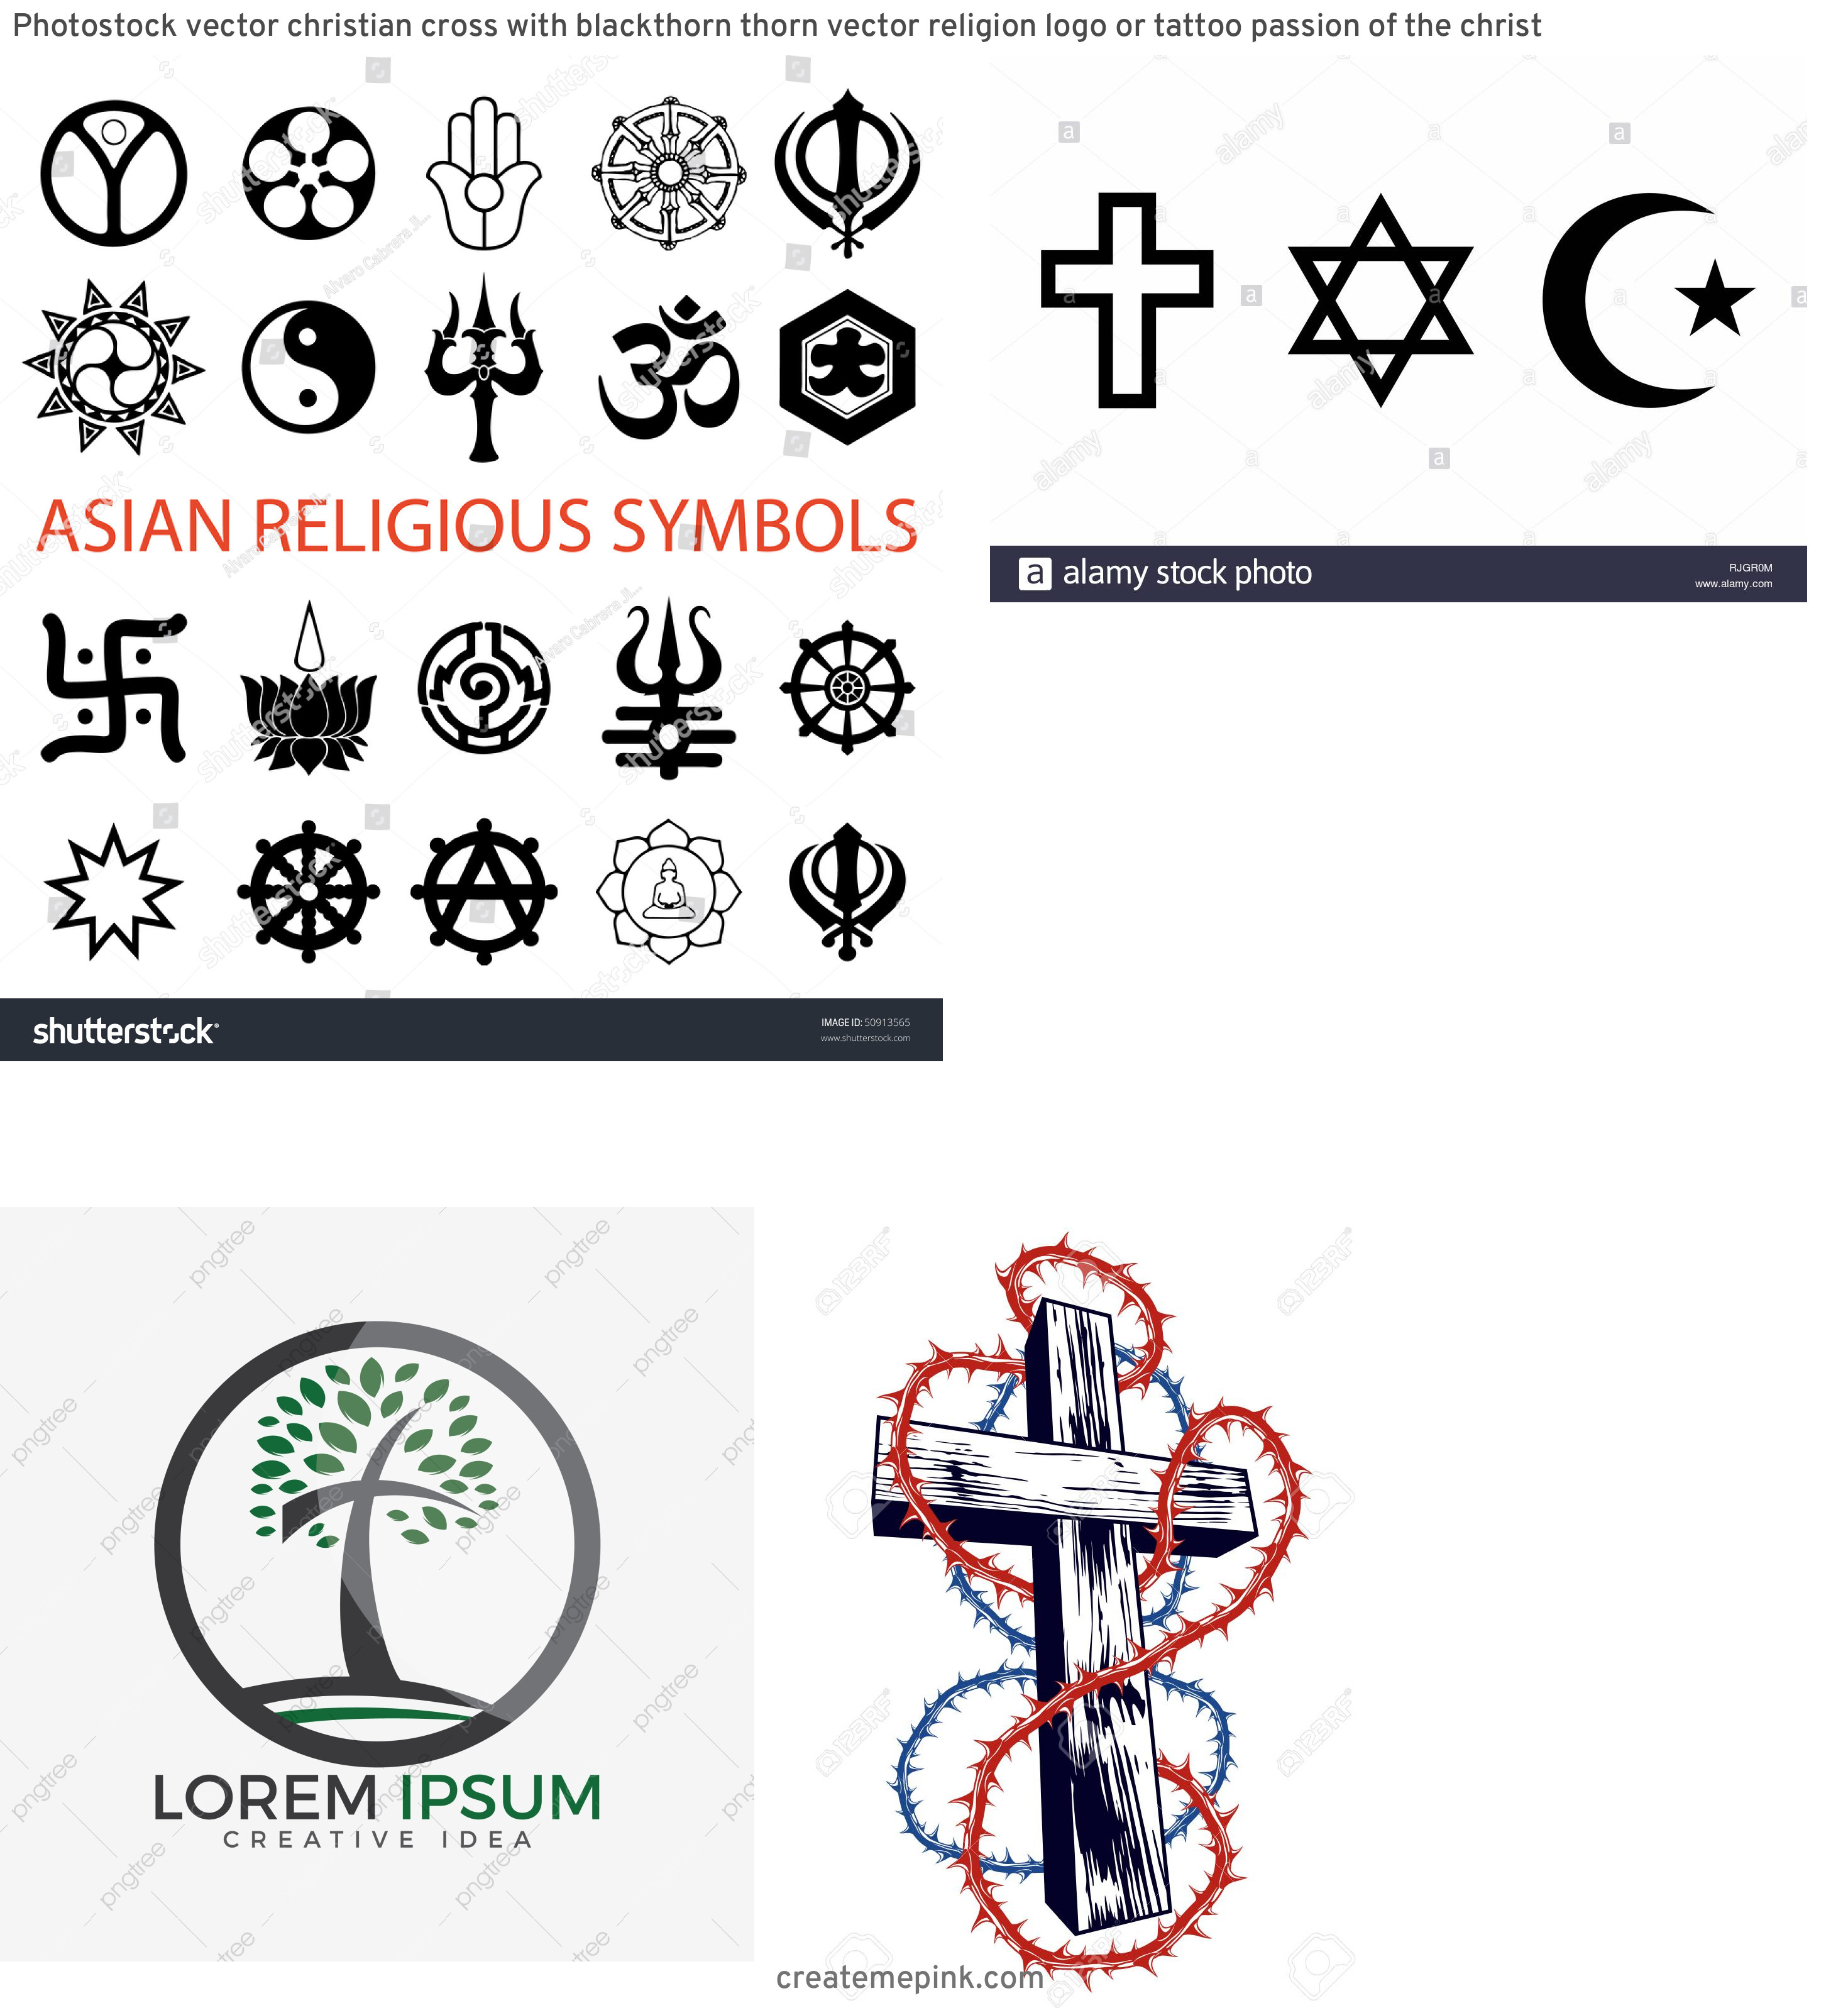 Religous Vectors: Photostock Vector Christian Cross With Blackthorn Thorn Vector Religion Logo Or Tattoo Passion Of The Christ